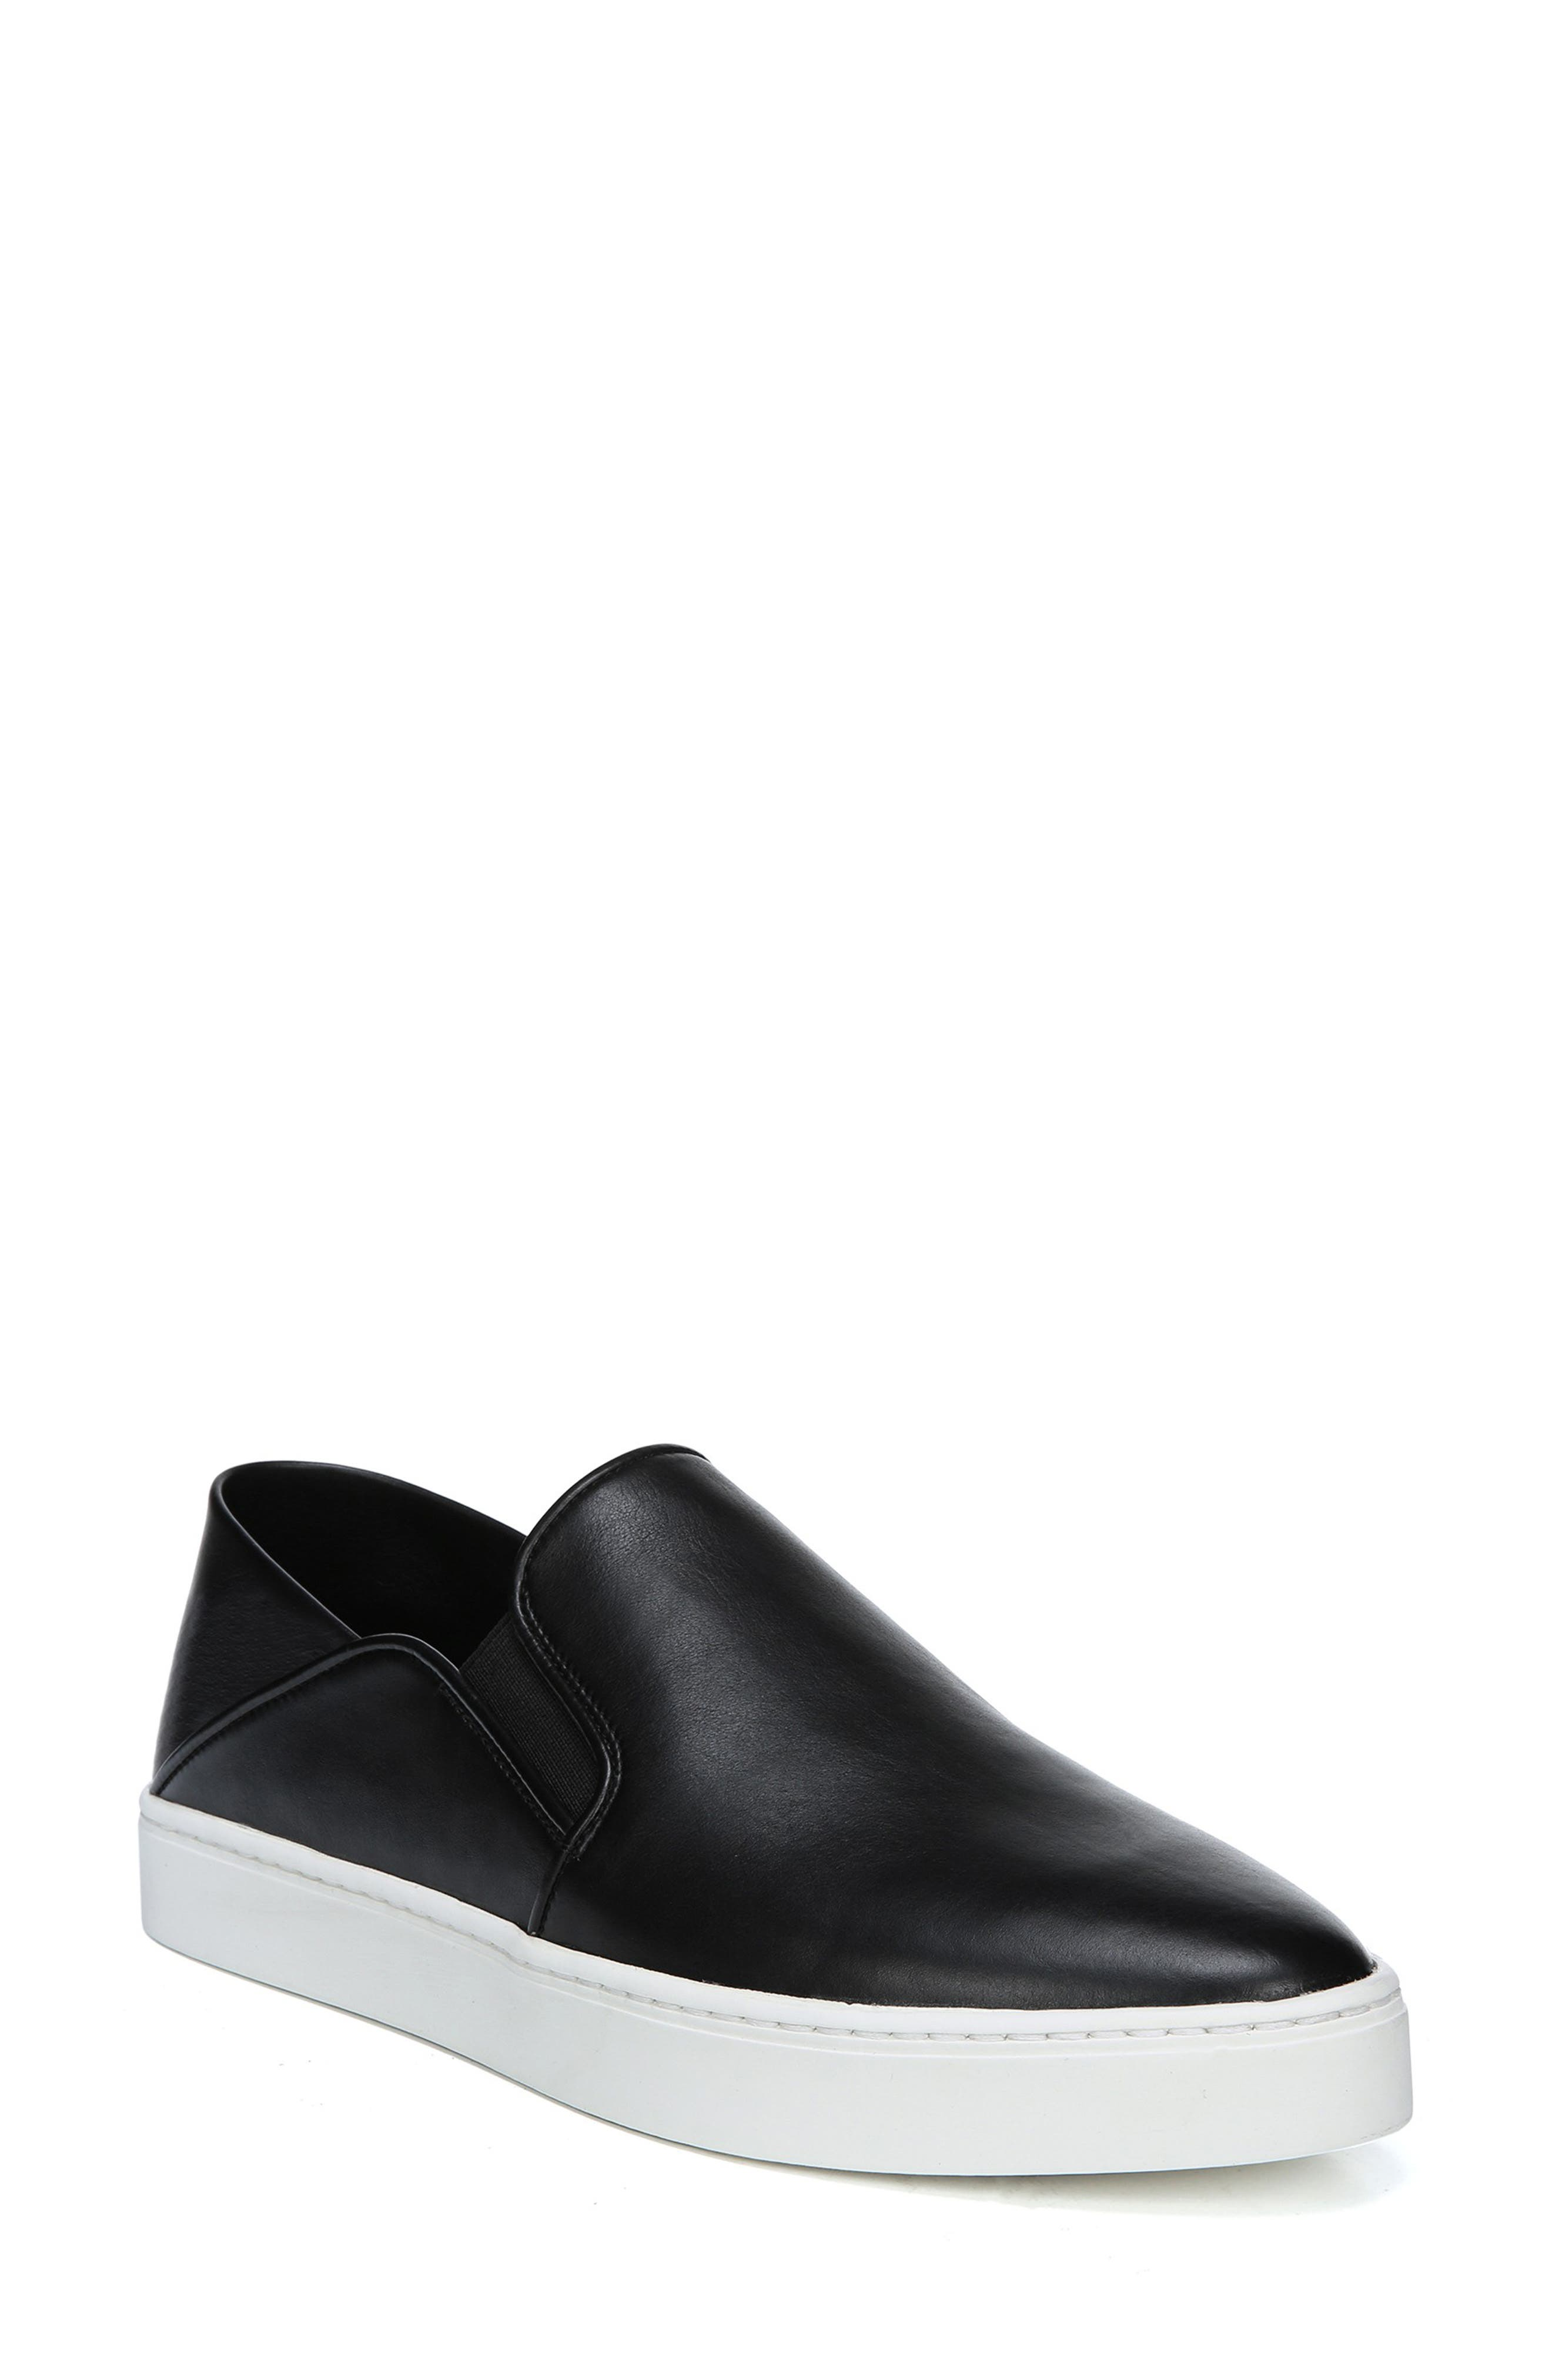 Garvey Slip-On Sneaker, Main, color, BLACK LEATHER